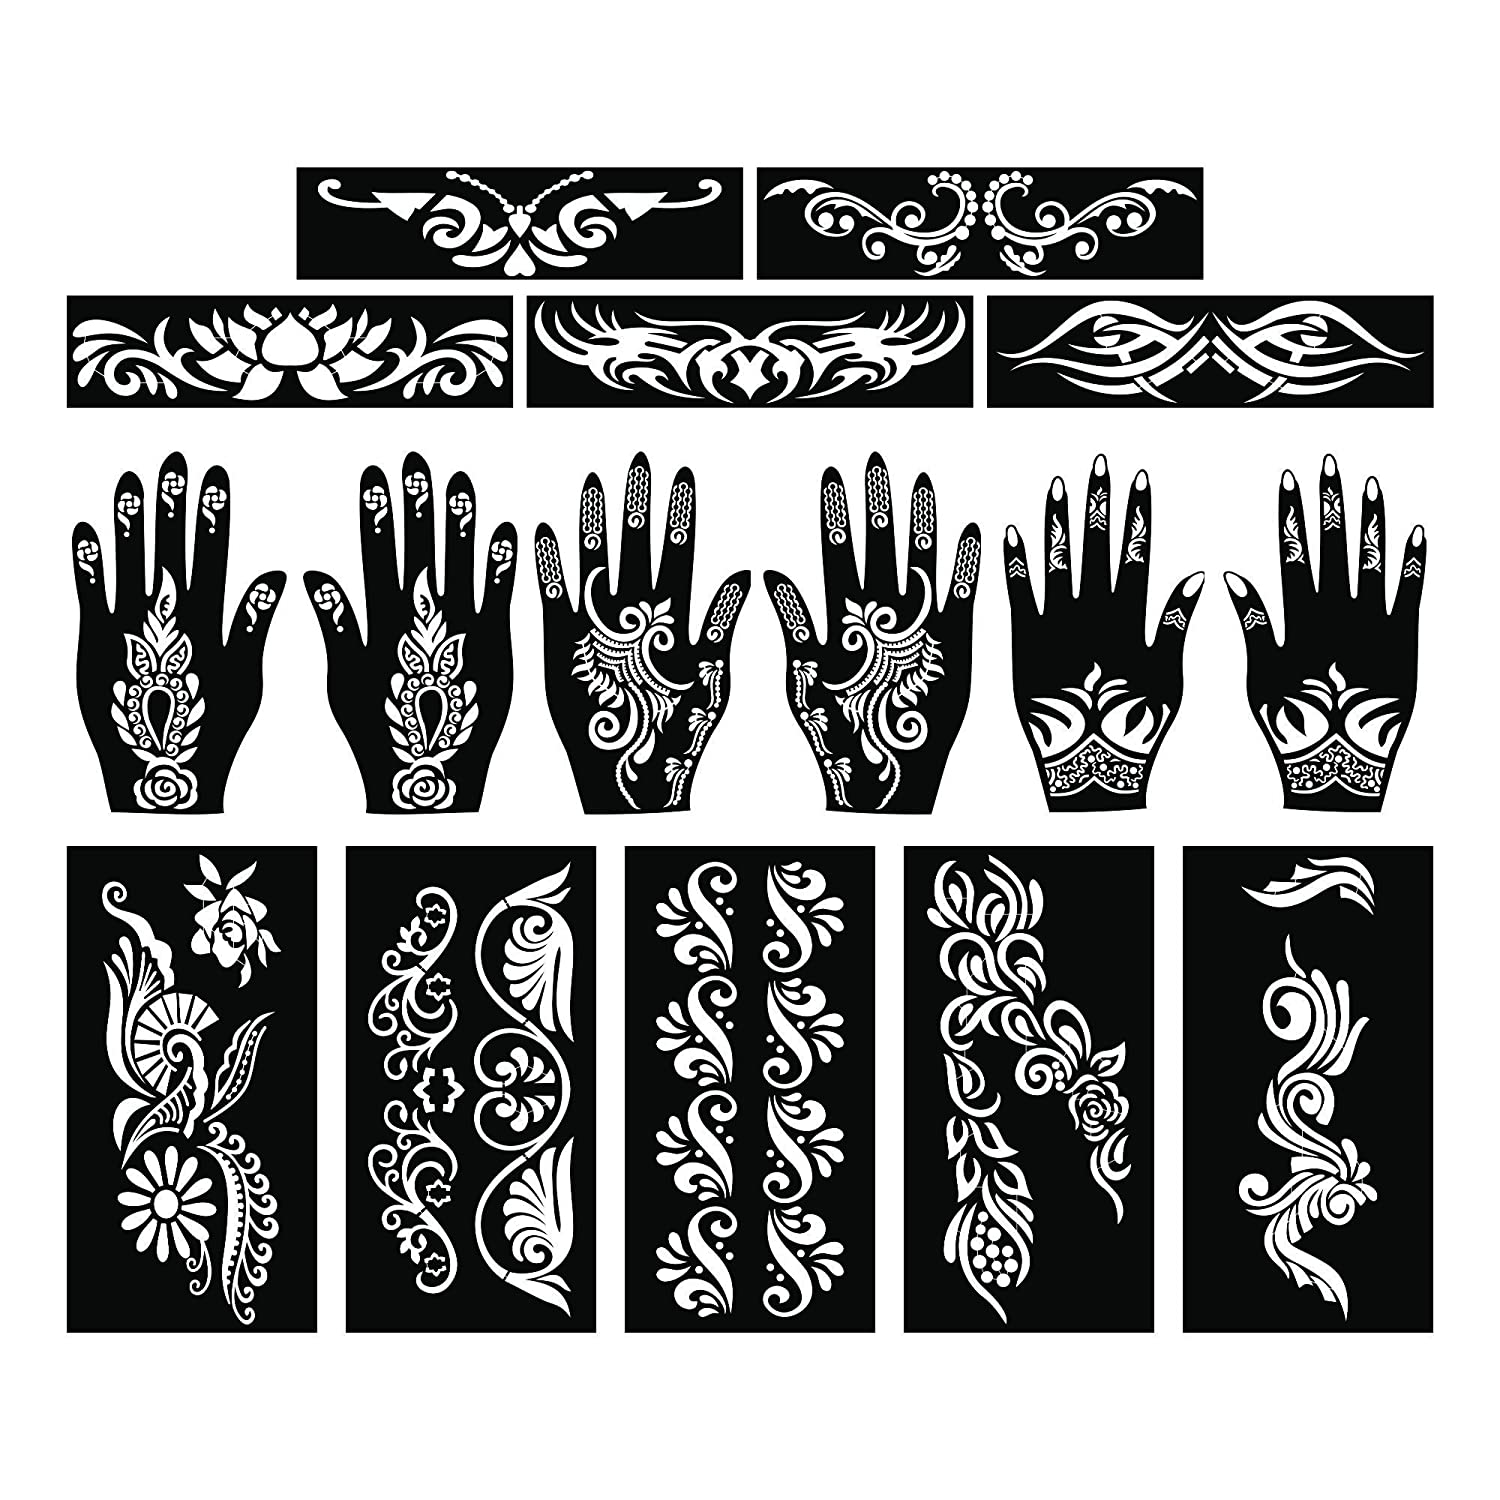 ff136cd67 Amazon.com : PARTH IMPEX Henna Tattoo Stencils (Pack of 16) Self Adhesive  Full Body Paint Designs Template for Temporary Mehndi Drawing Hand Arms  Shoulders ...